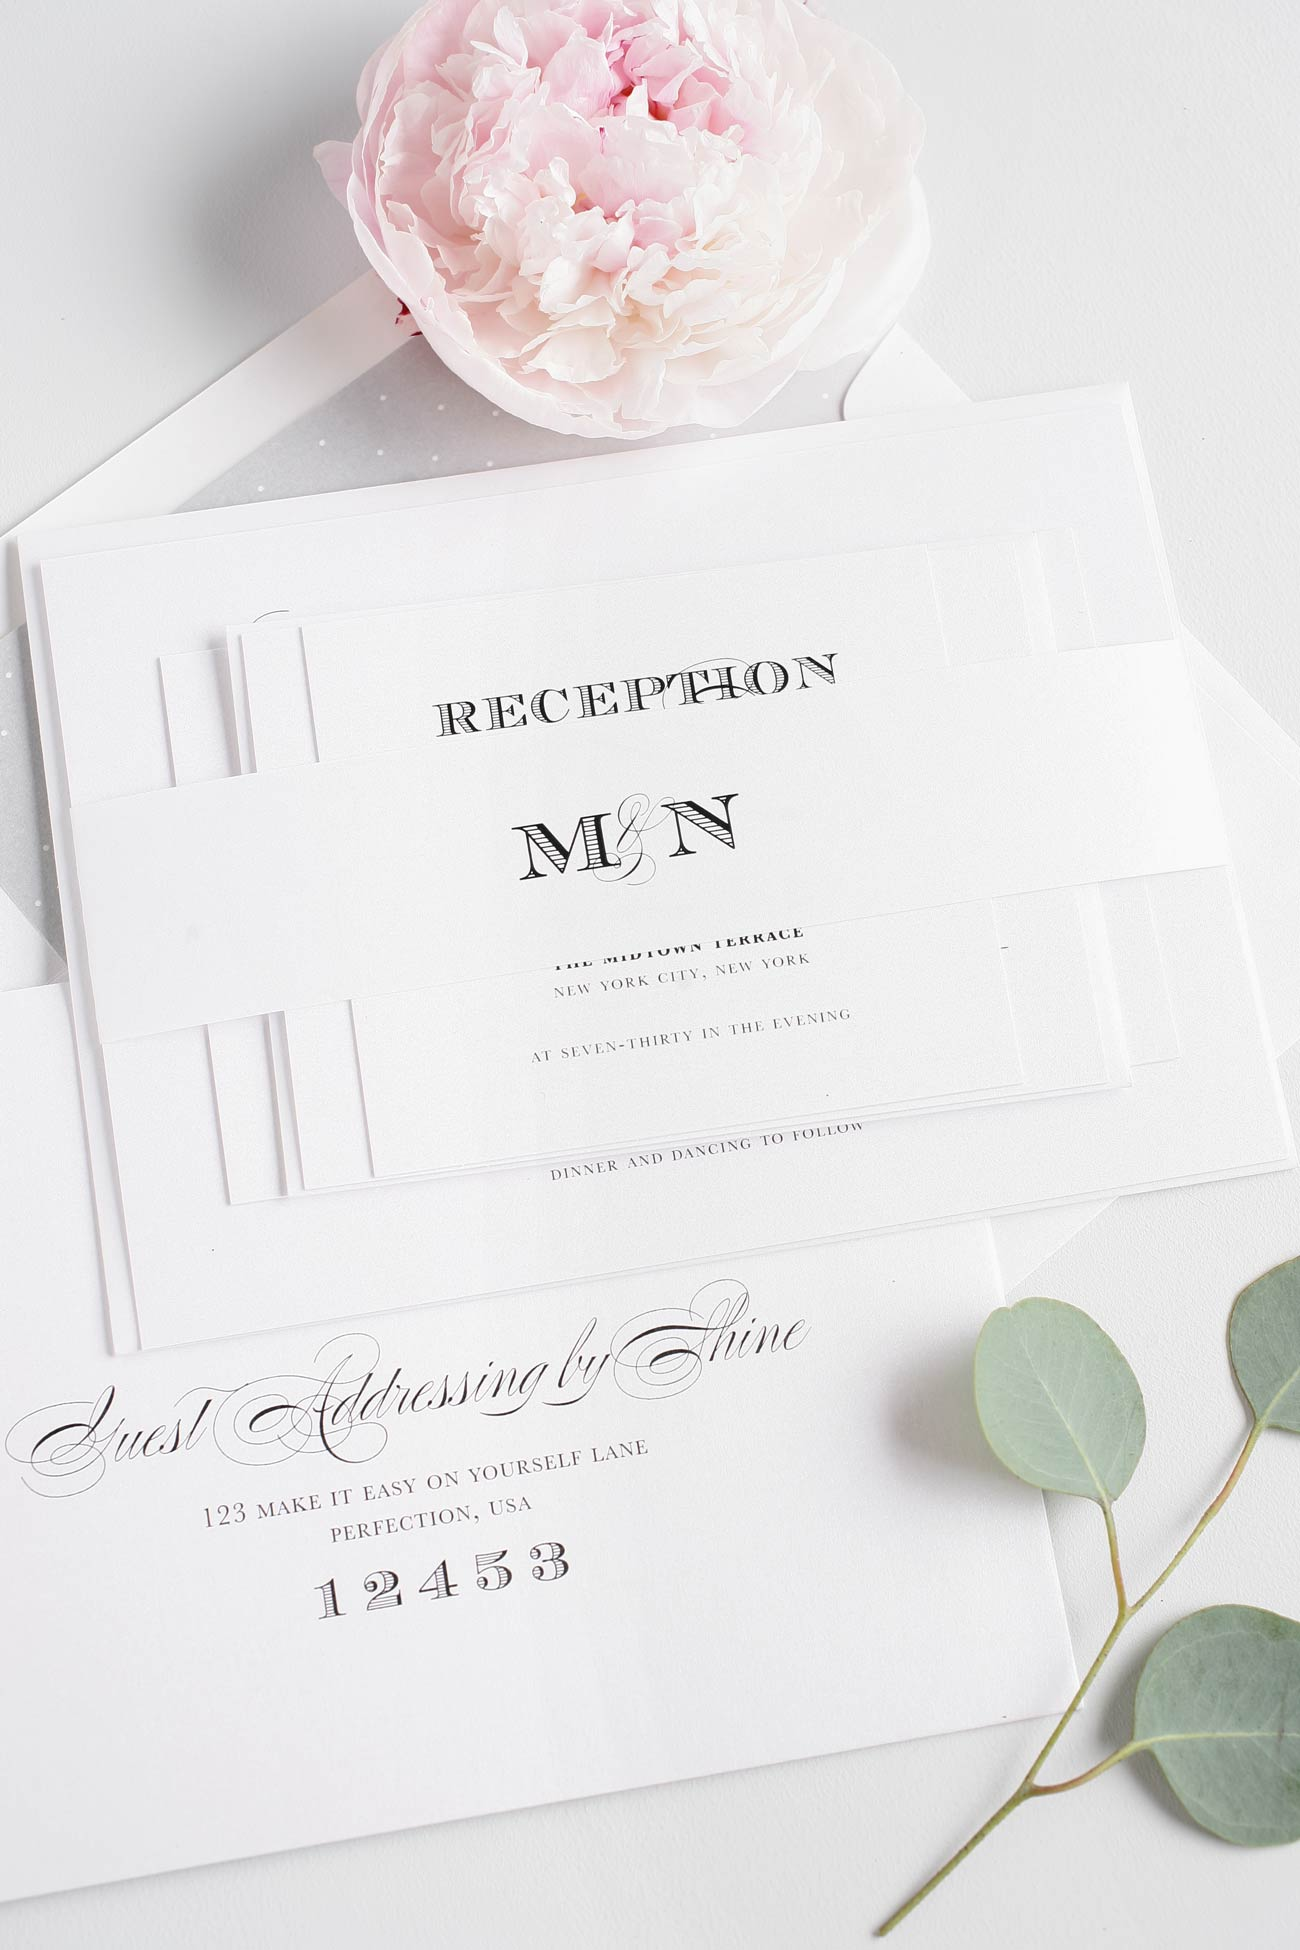 Monogram wedding invitations with engravers type